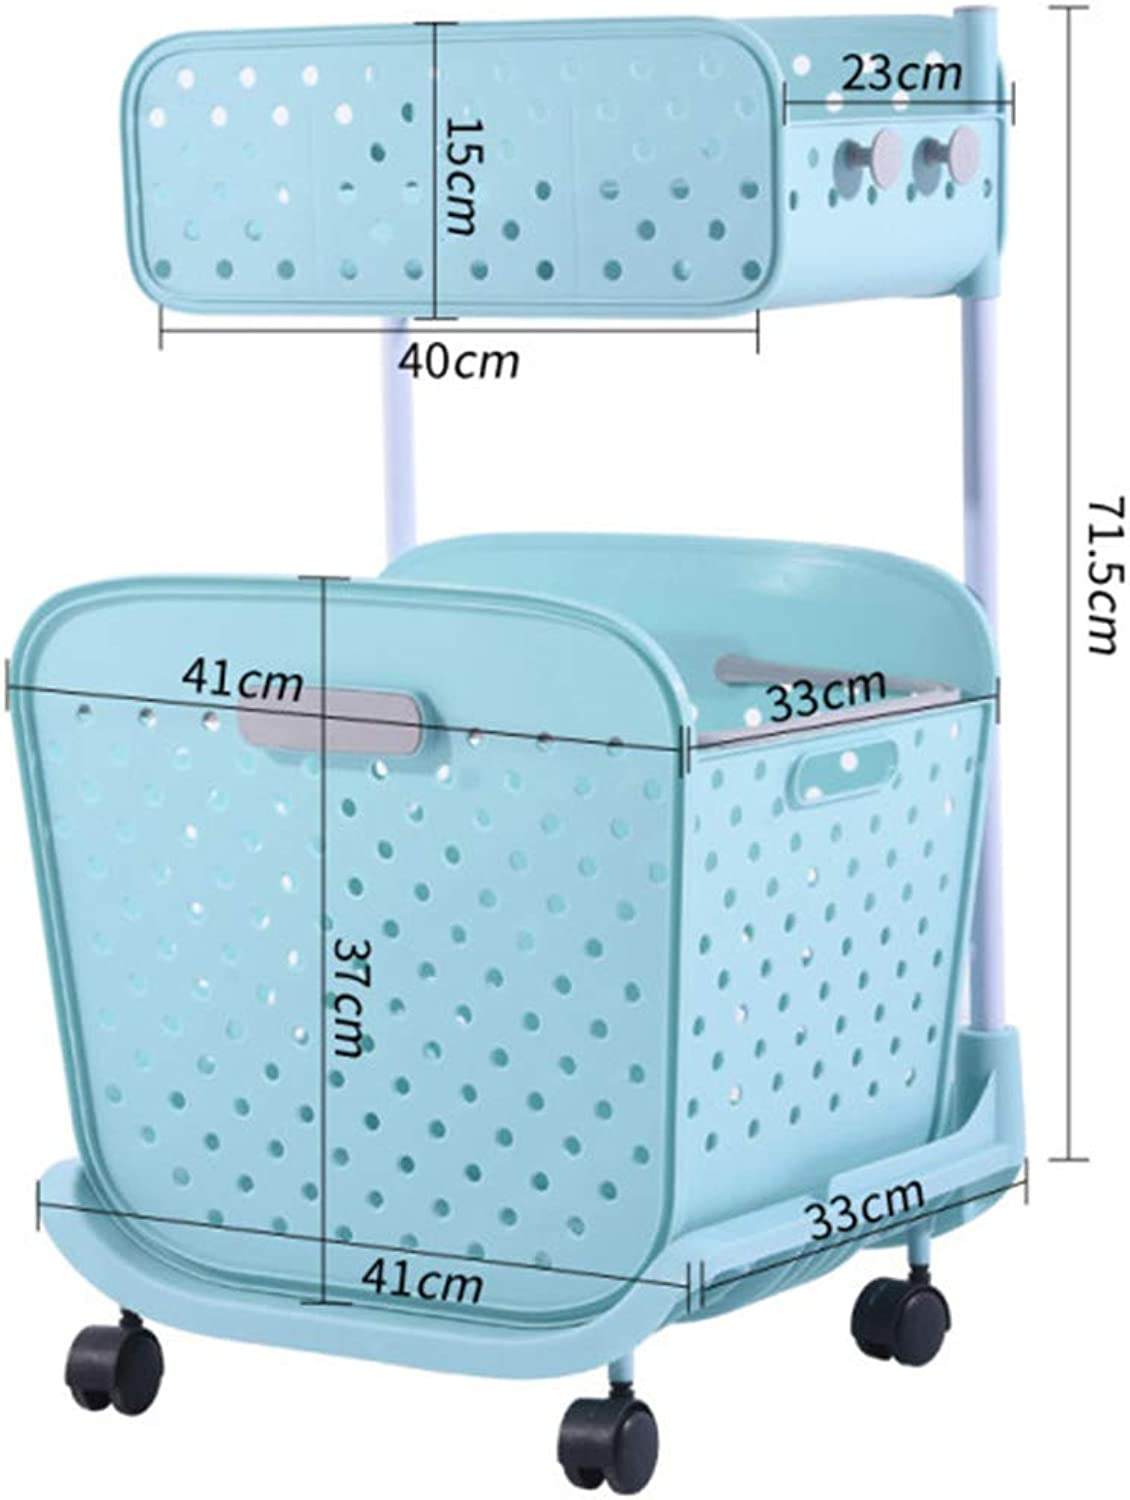 Storage Basket Toy Storage Laundry Basket Extra Large Plastic Double Storage Basket Rack ZHANGQIANG (color   bluee, Size   Double Layer)